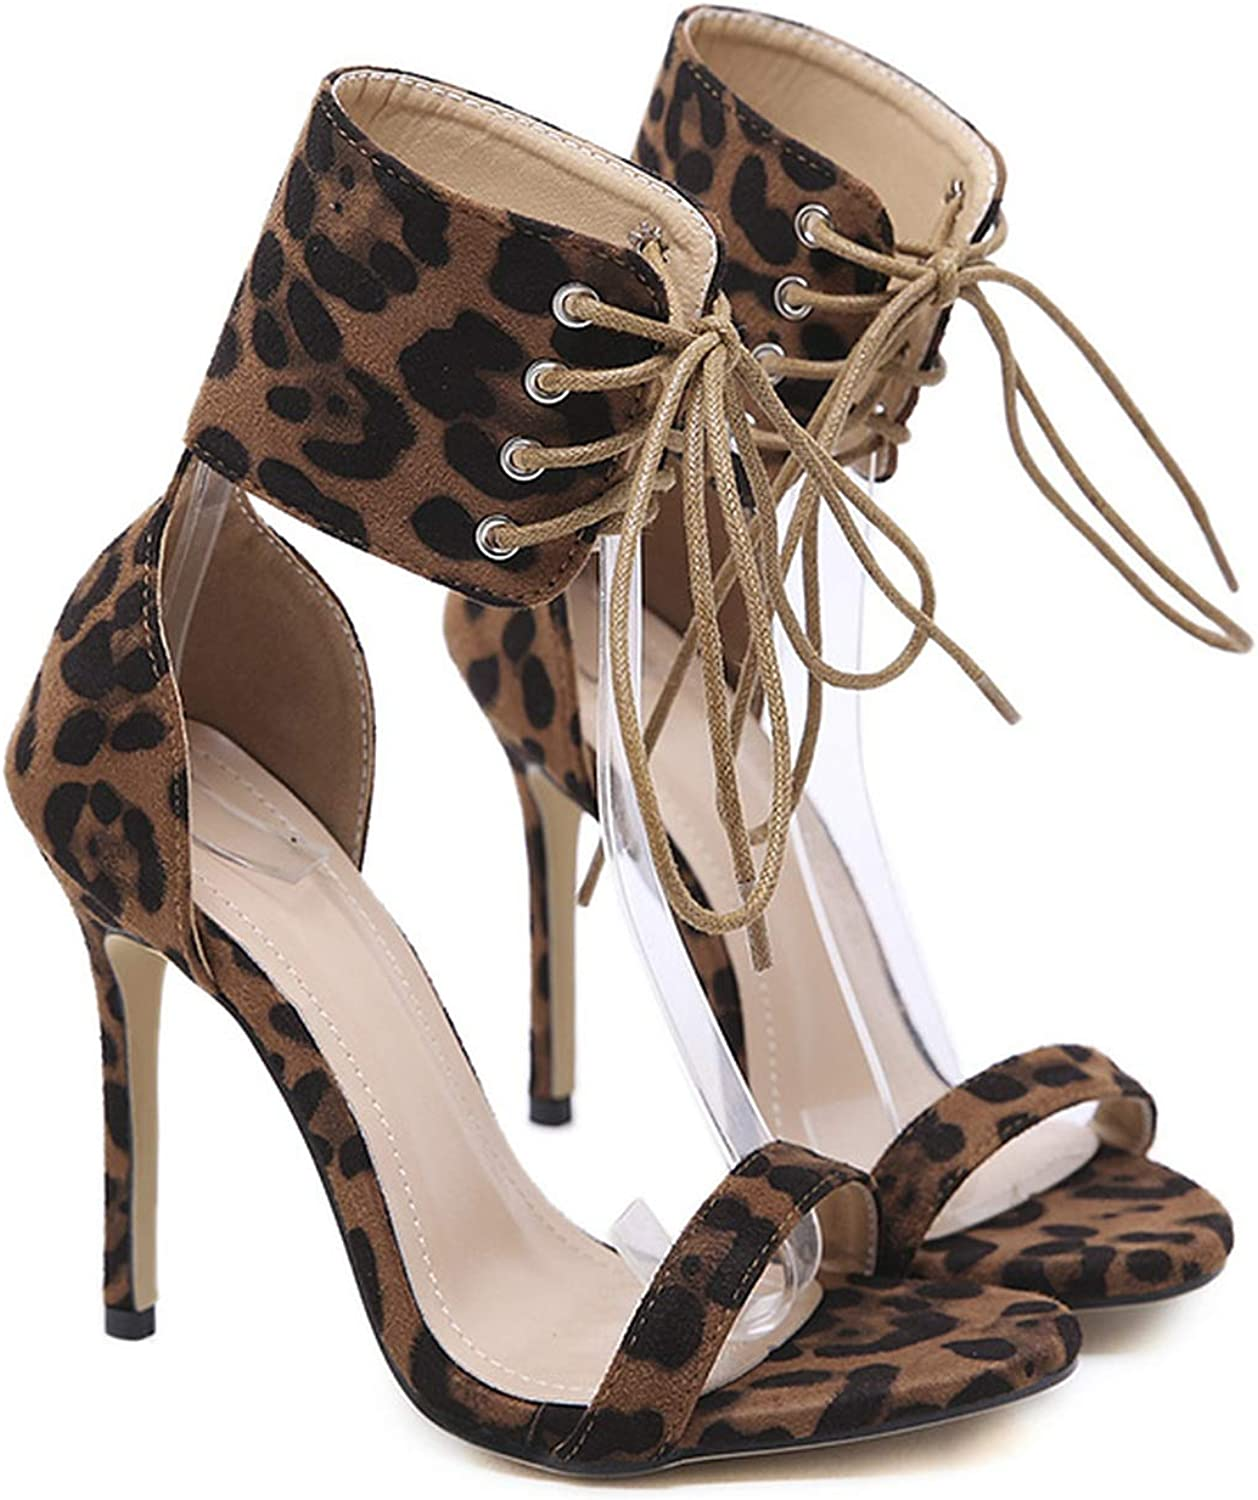 Little SU Ankle Strap Sandals High Heels Pumps Leopard Ankle Wrap Cross Tied Lace Up Platform shoes